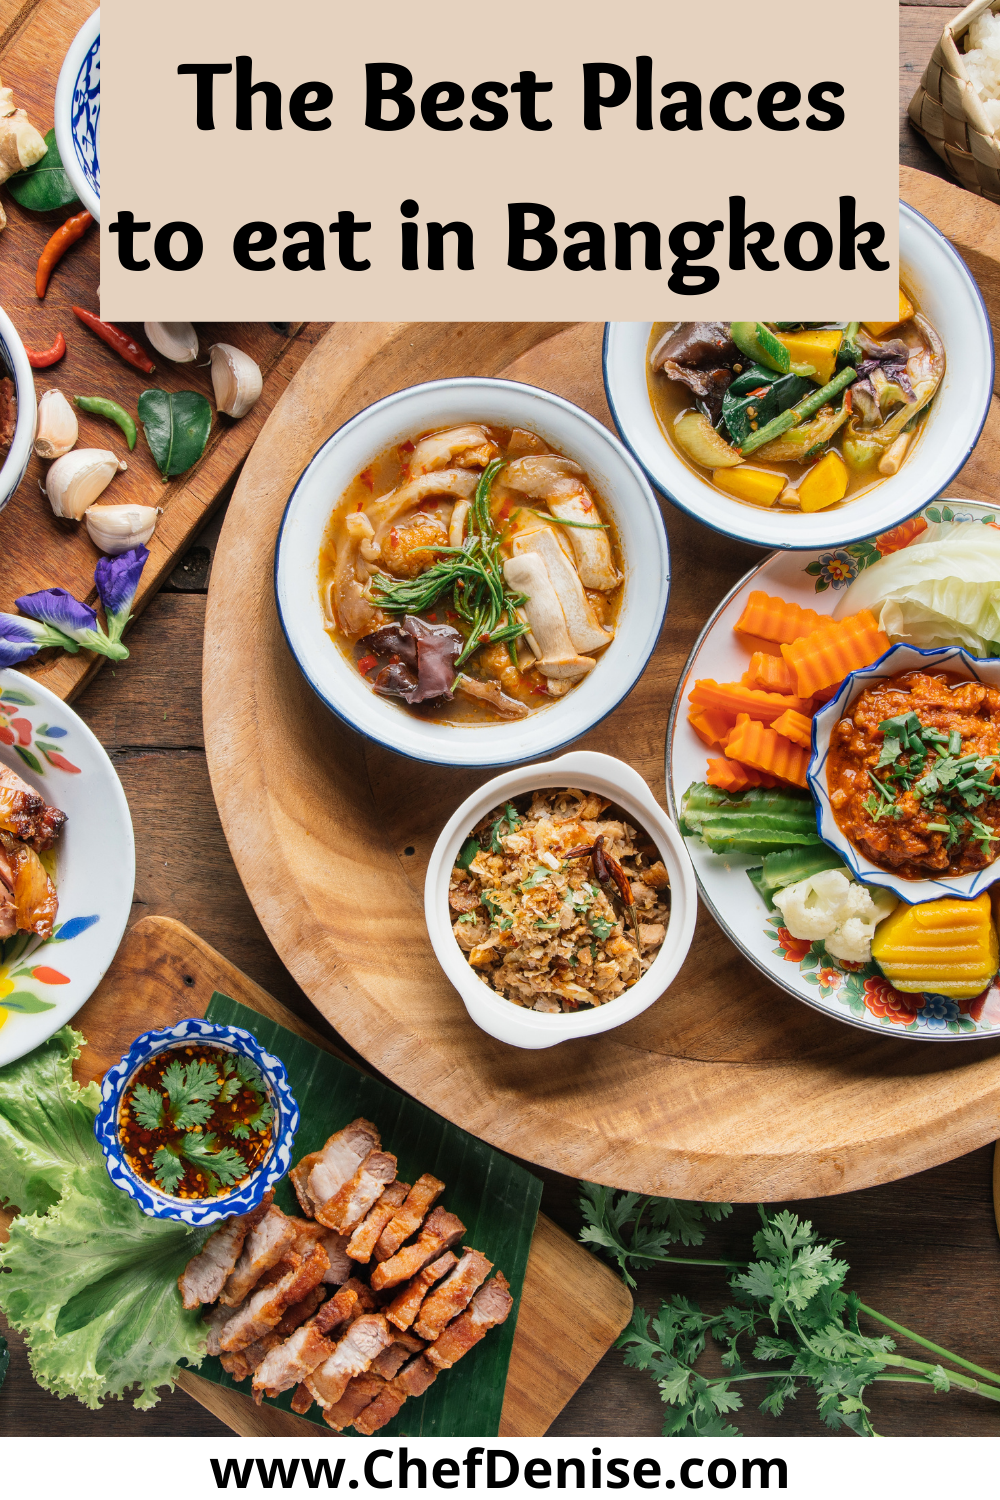 Pin for best places to eat in Bangkok